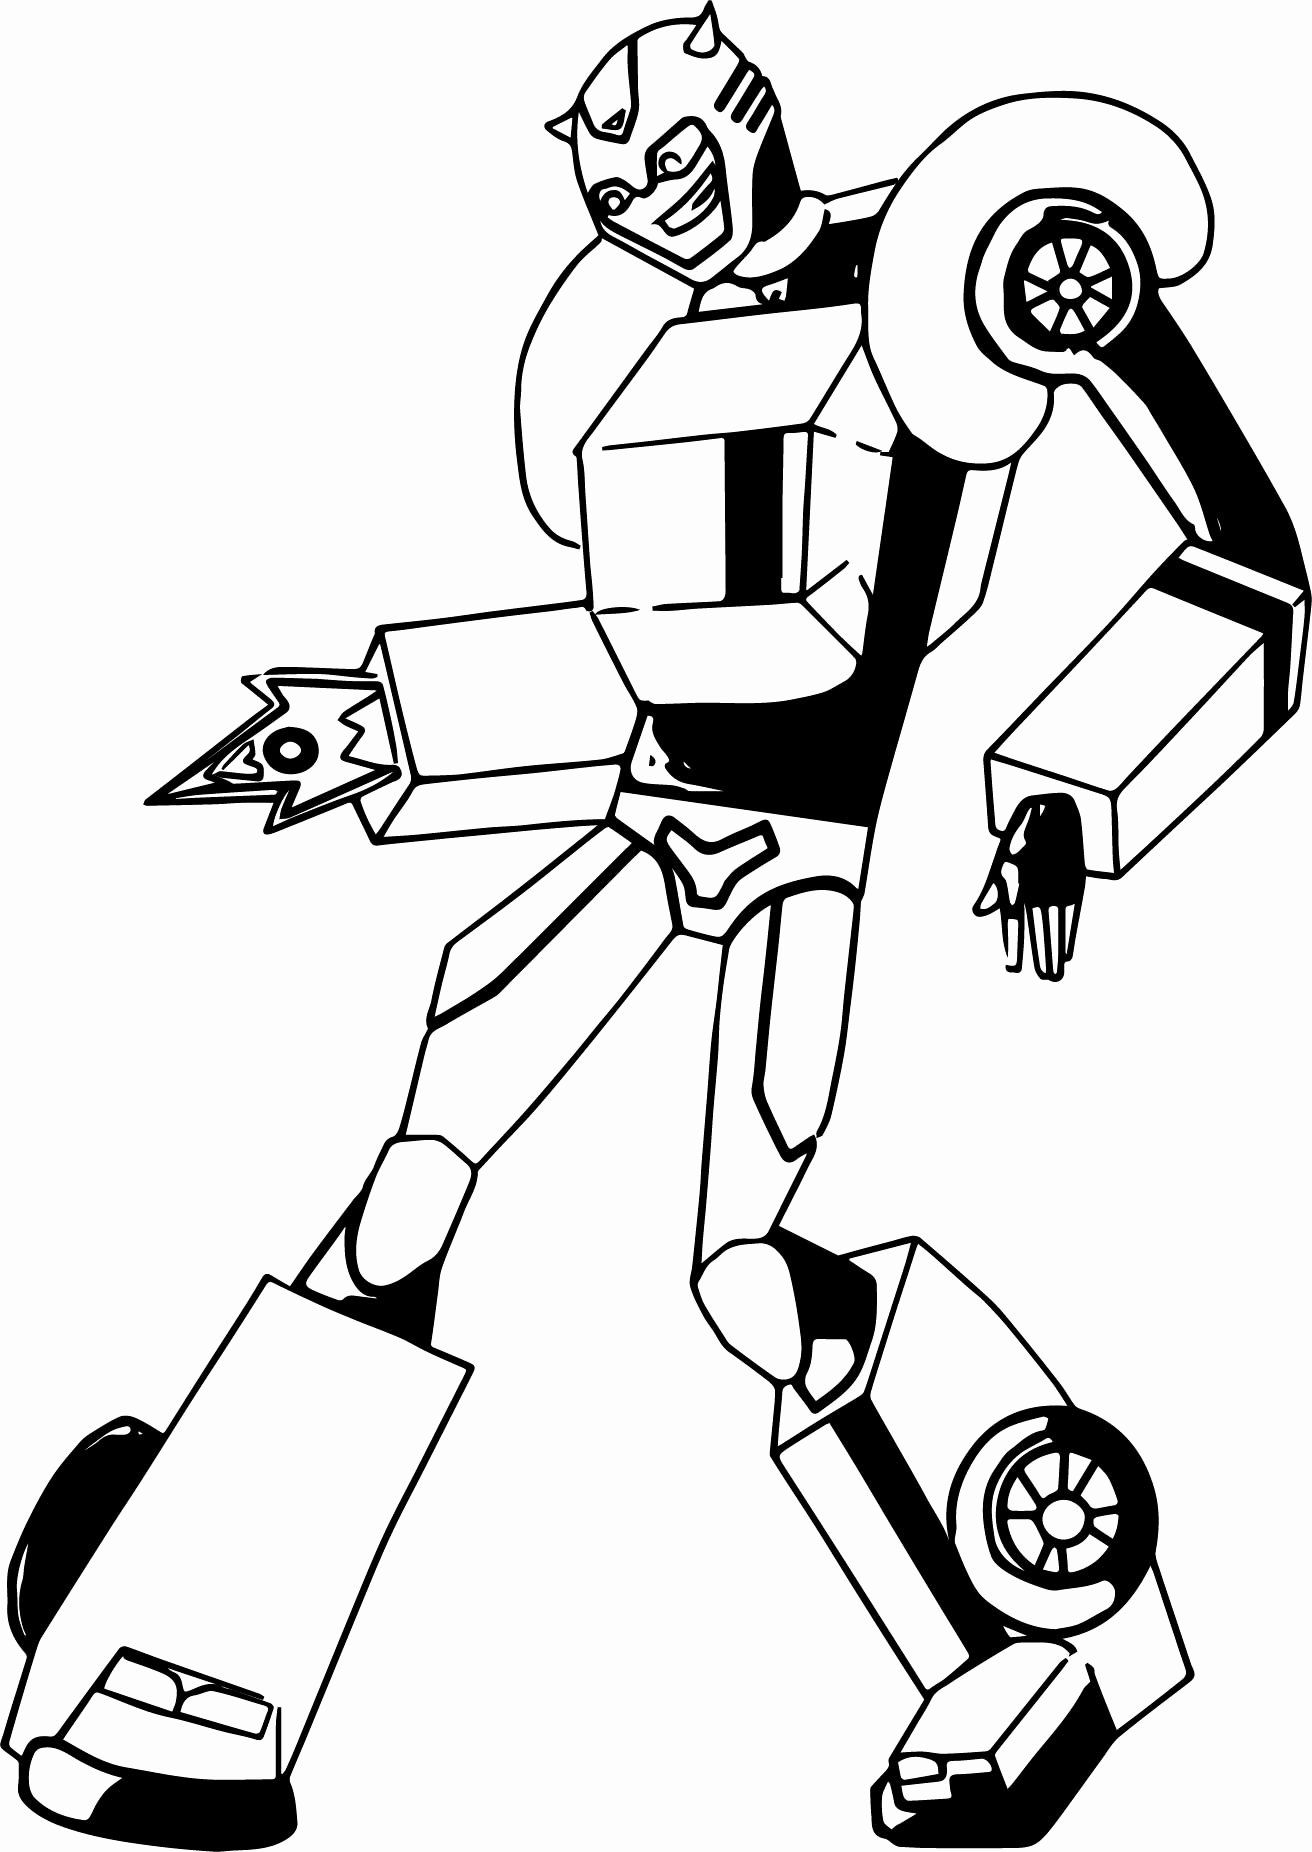 Bumblebee Transformer Coloring Page Best Of Bumblebee Coloring Pages Parumi Southwestdance In 2020 Transformers Coloring Pages Bee Coloring Pages Lego Coloring Pages